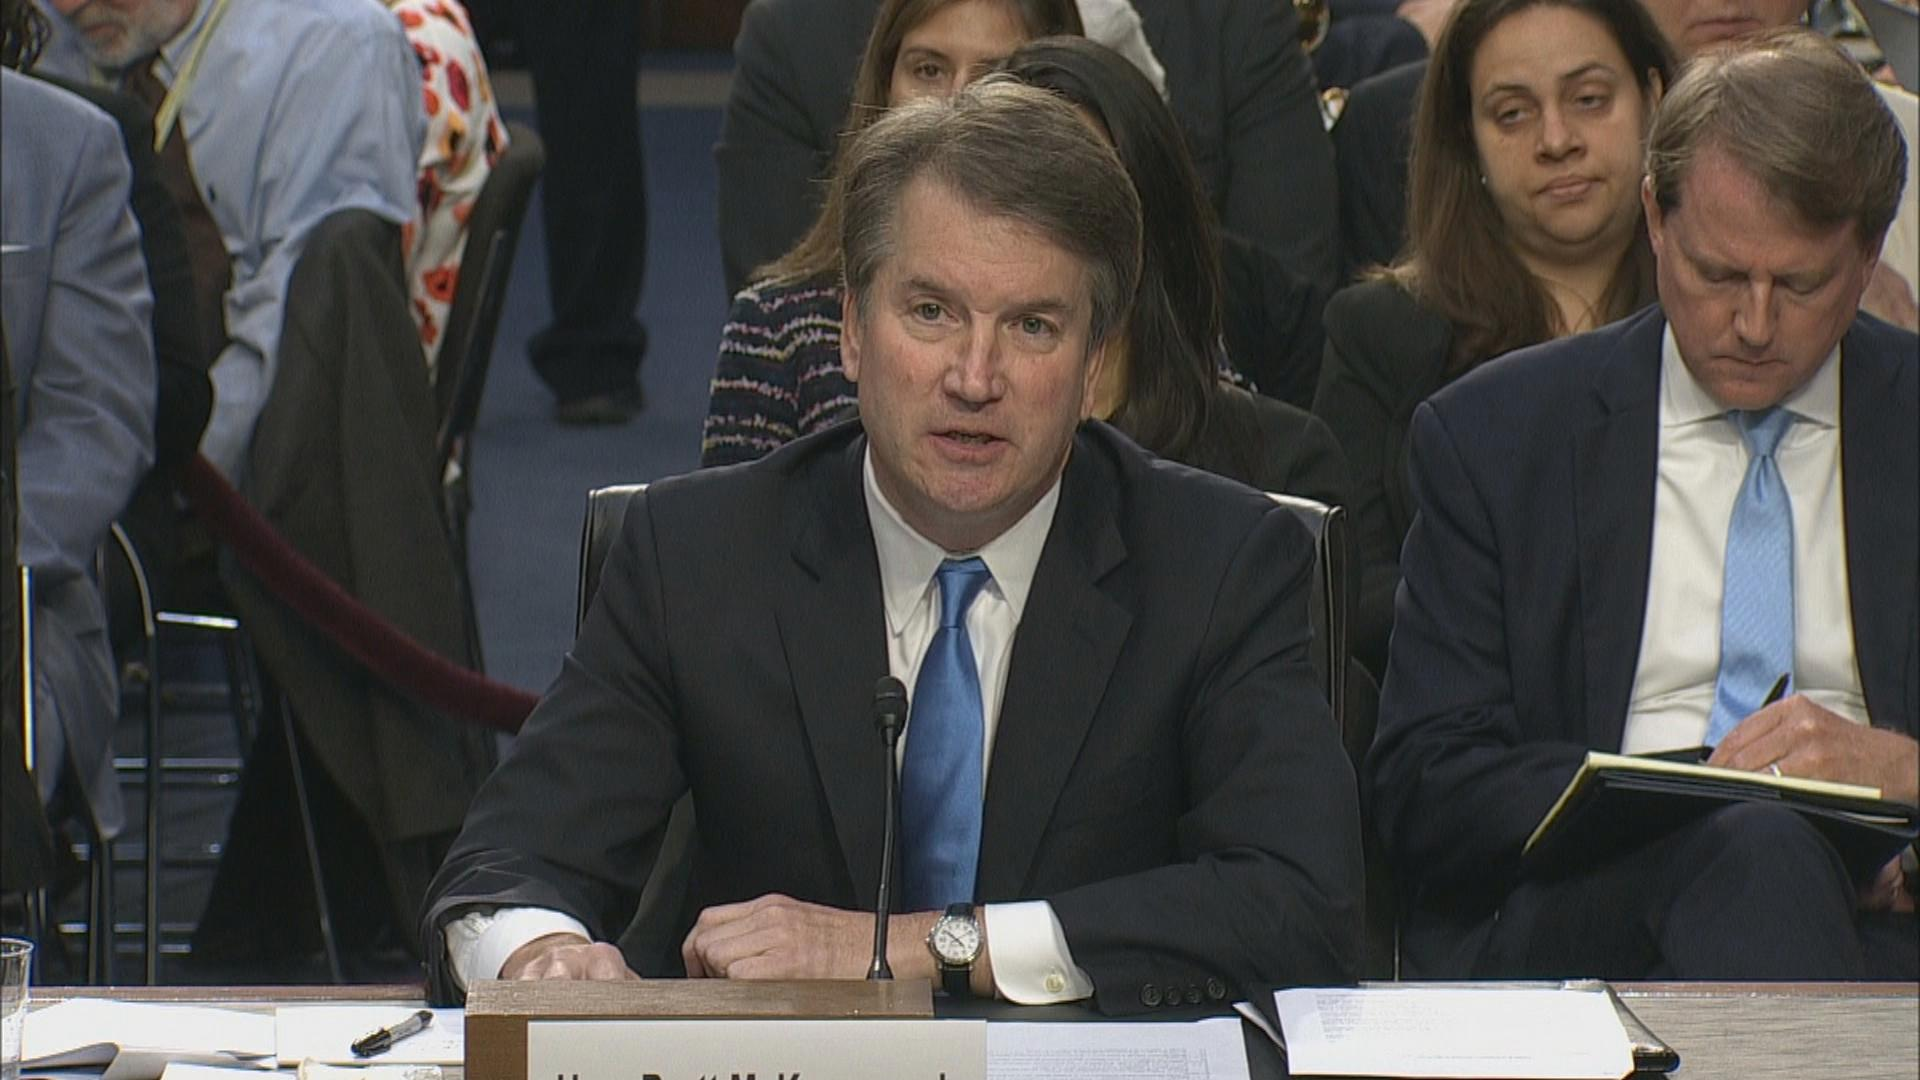 Judge Brett Kavanaugh discusses Roe v. Wade during his confirmation hearing before the Senate Judiciary Committee on Wednesday, Sept. 5, 2018.